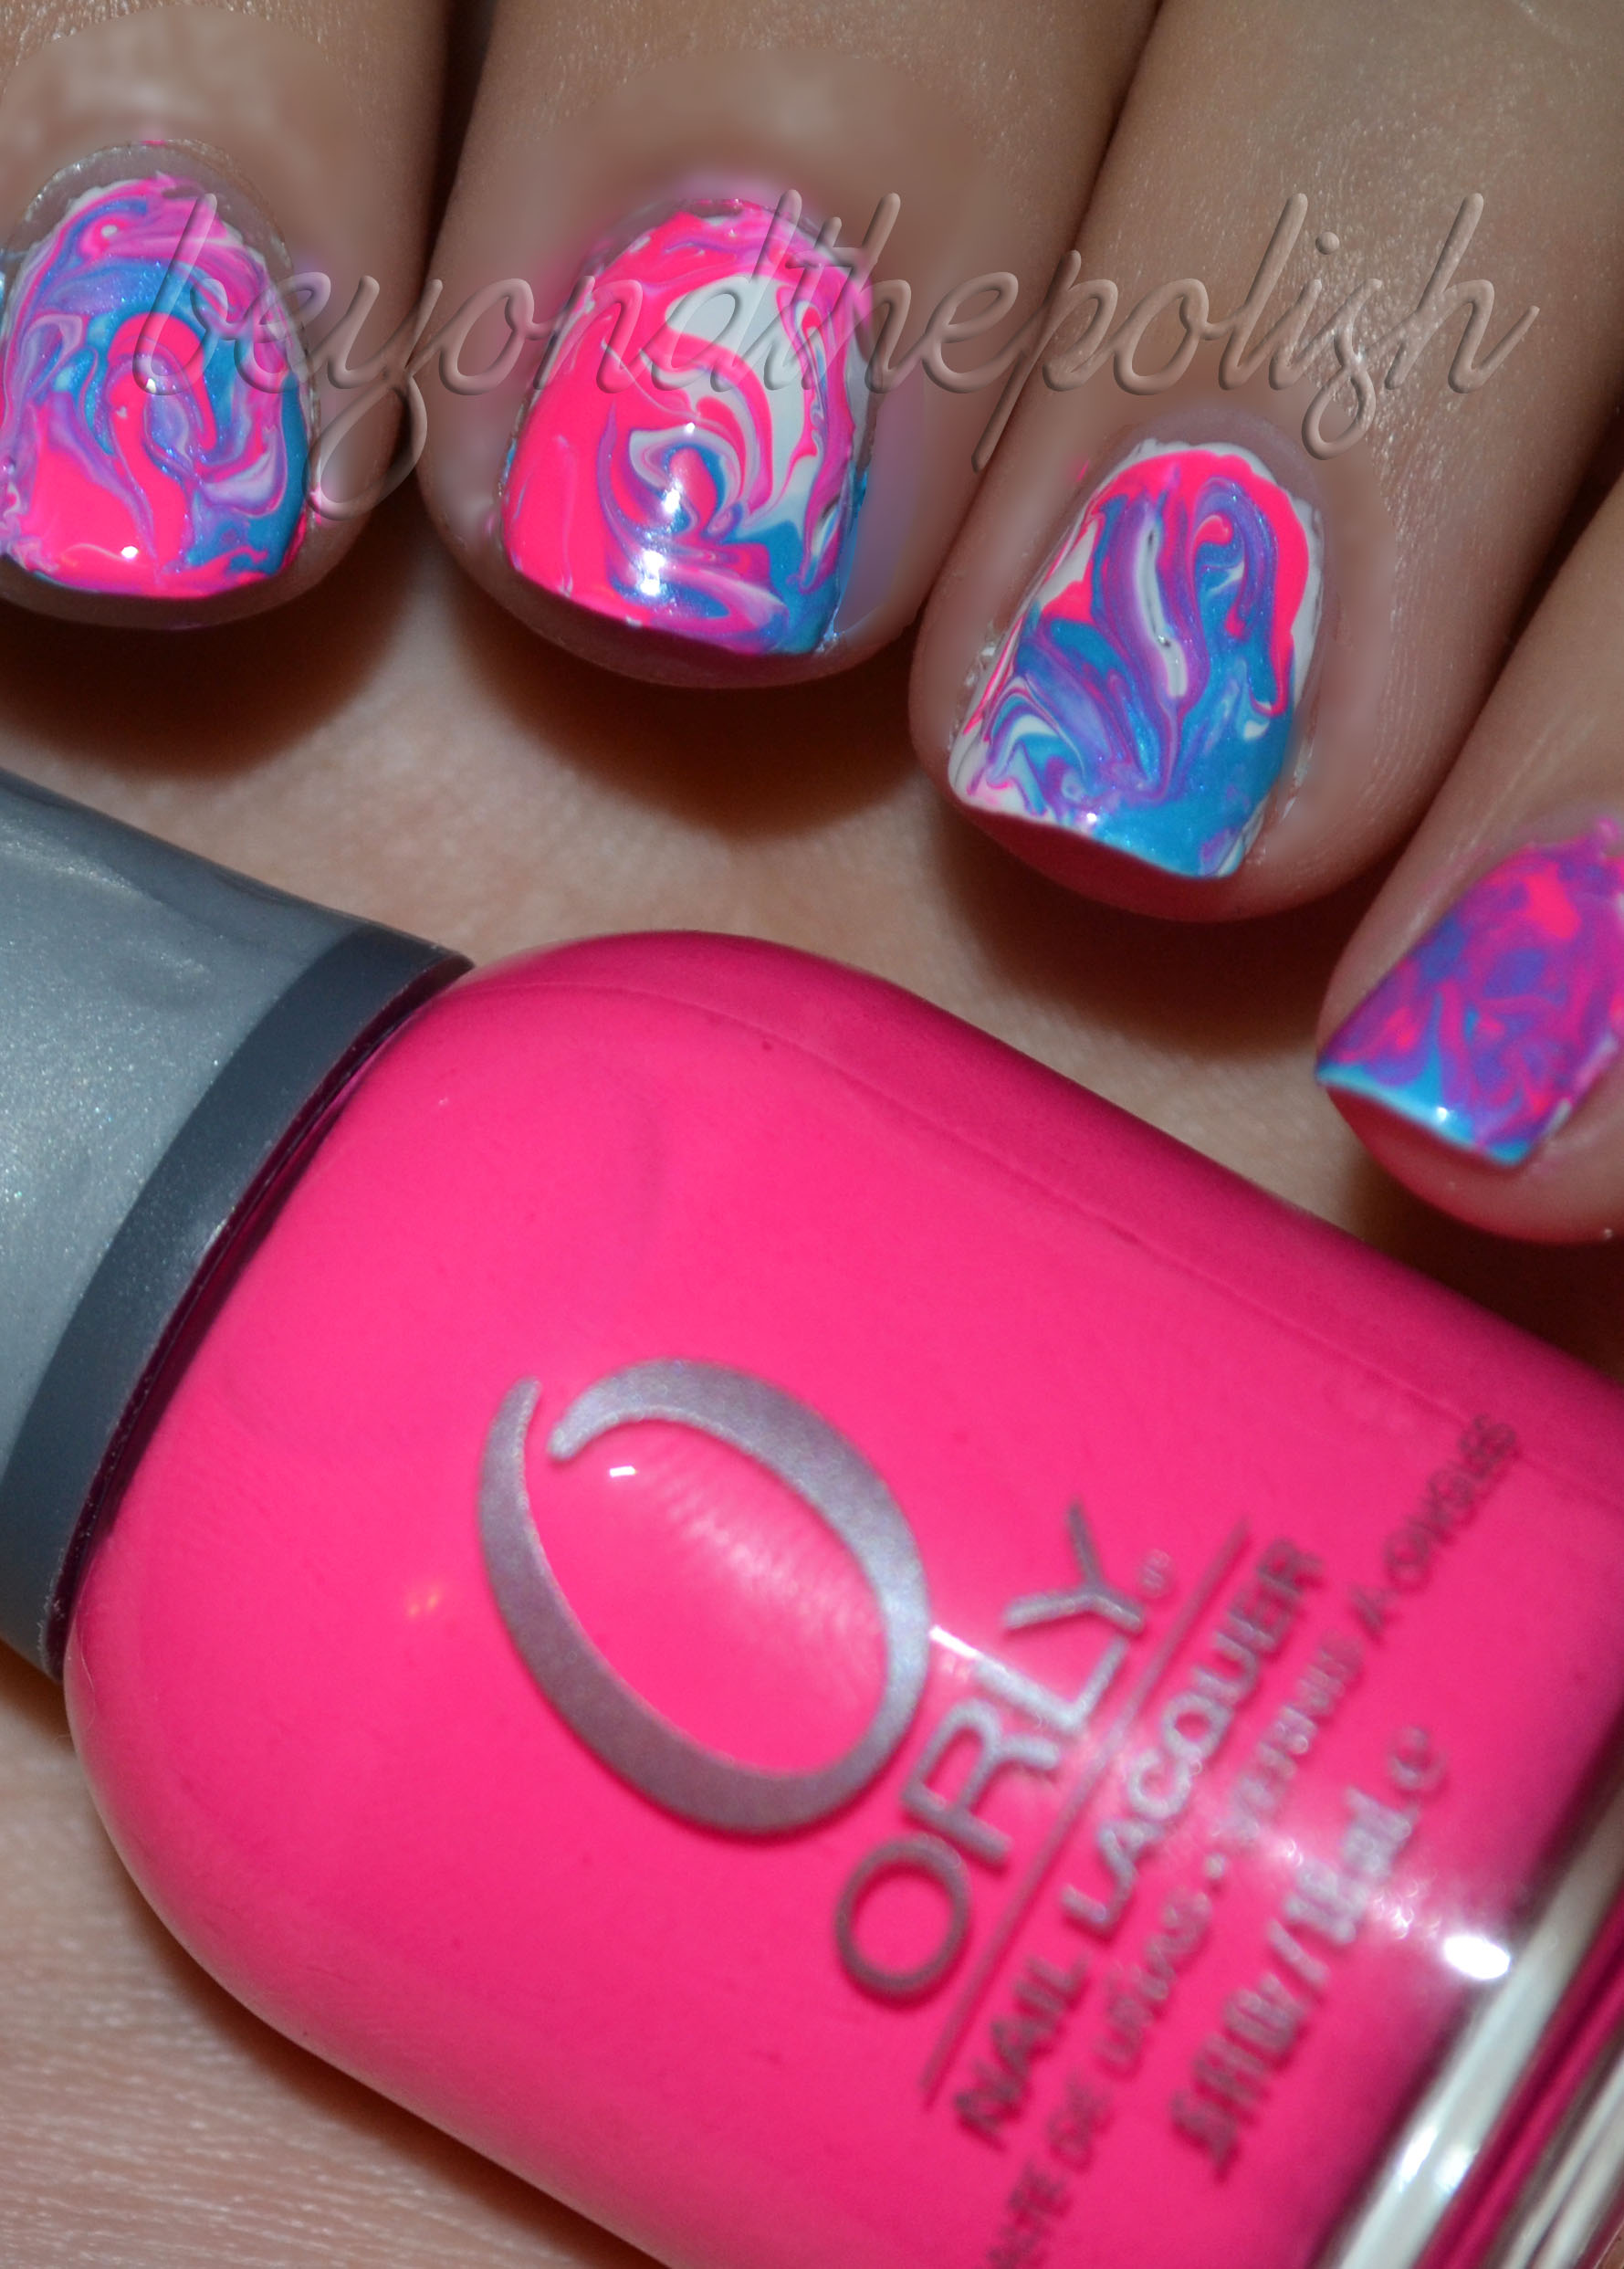 Nail Polish Swirl Design The Best Inspiration For Design And Color